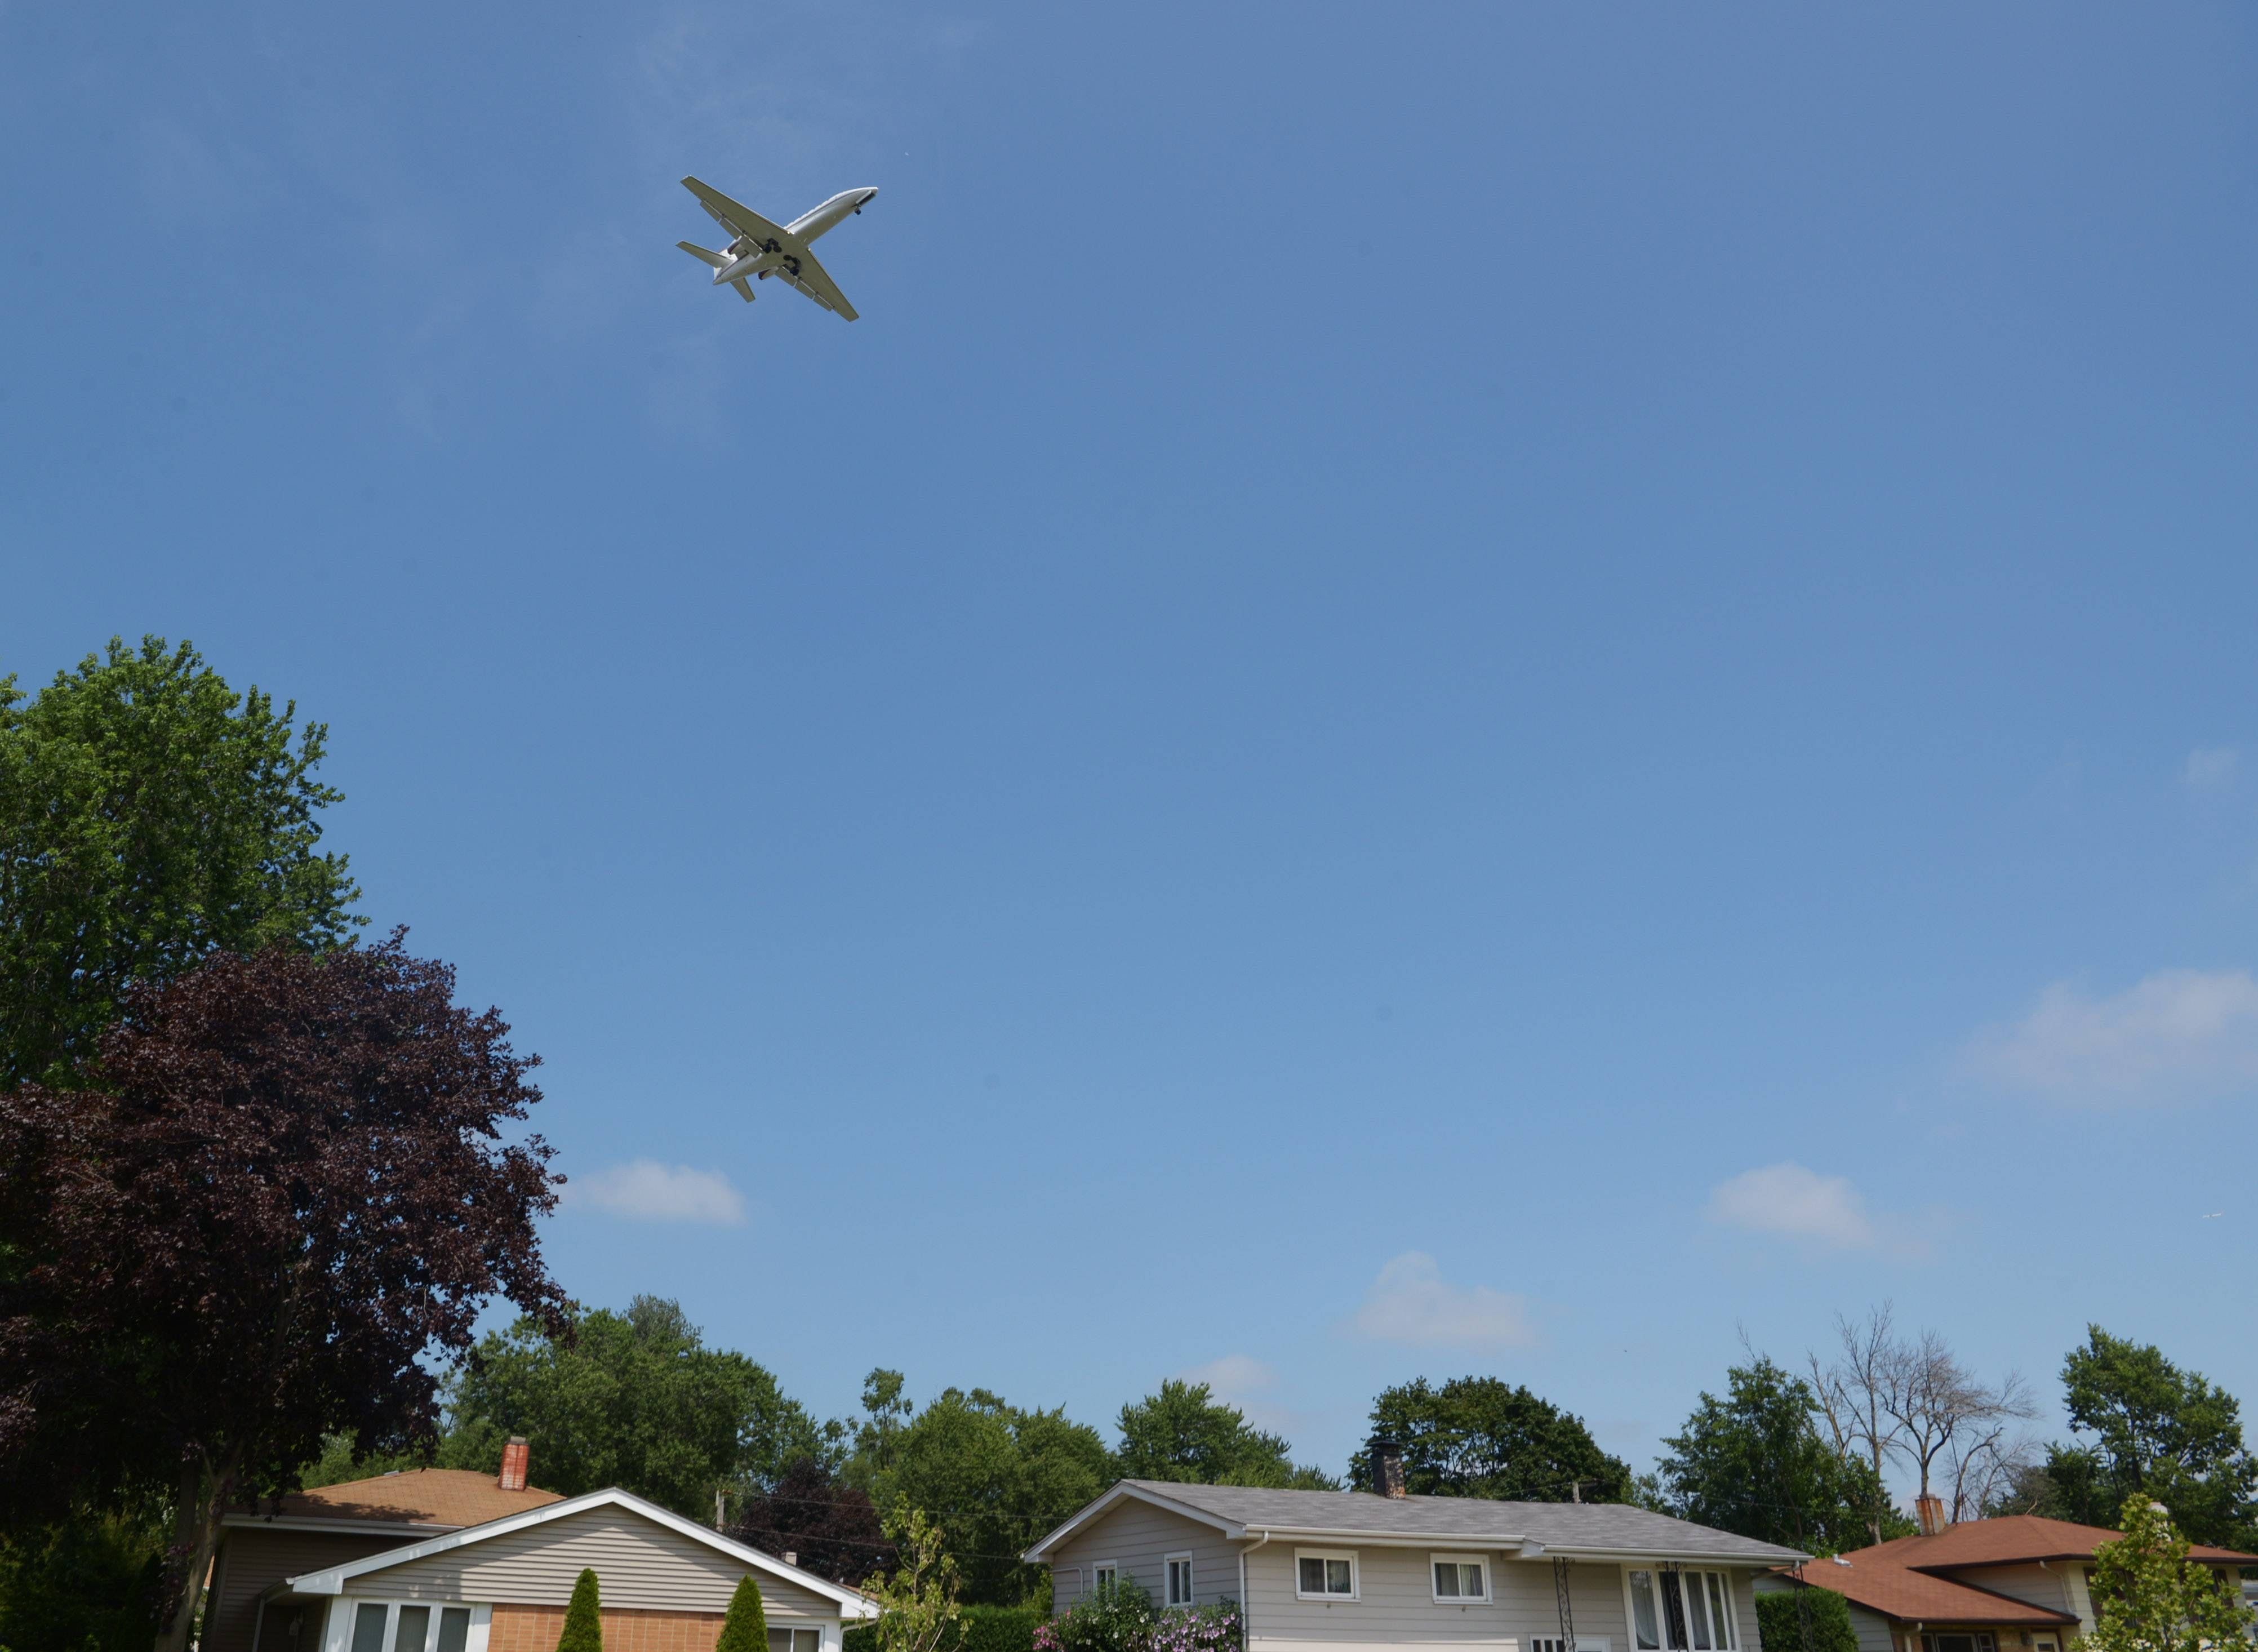 Chicago Executive Airport intends to launch a trial sound insulation program that would provide new doors, windows and other noise-reducing measures to homes nearby. Here, a jet passes over Wheeling homes before landing. The airport is co-owned by Wheeling and Prospect Heights.